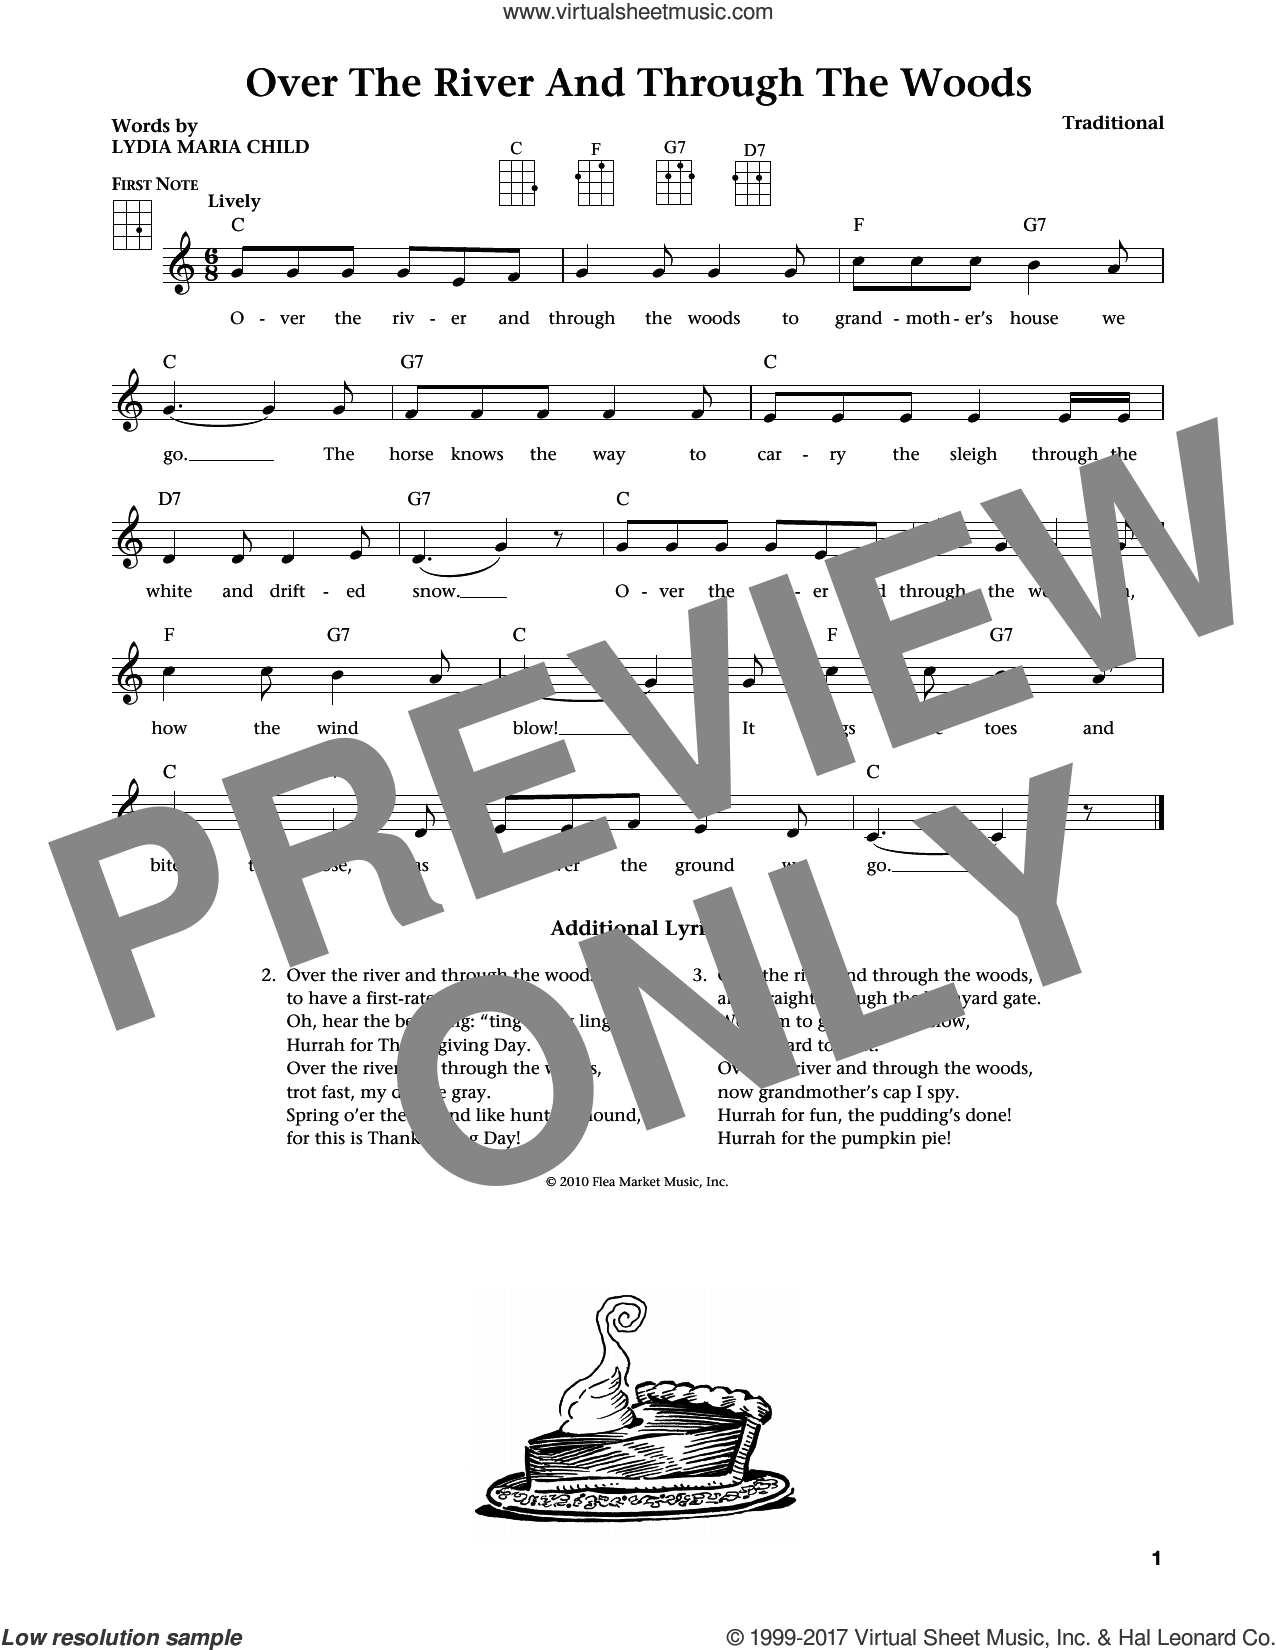 Over The River And Through The Woods (from The Daily Ukulele) (arr. Liz and Jim Beloff) sheet music for ukulele , Jim Beloff and Liz Beloff, intermediate skill level